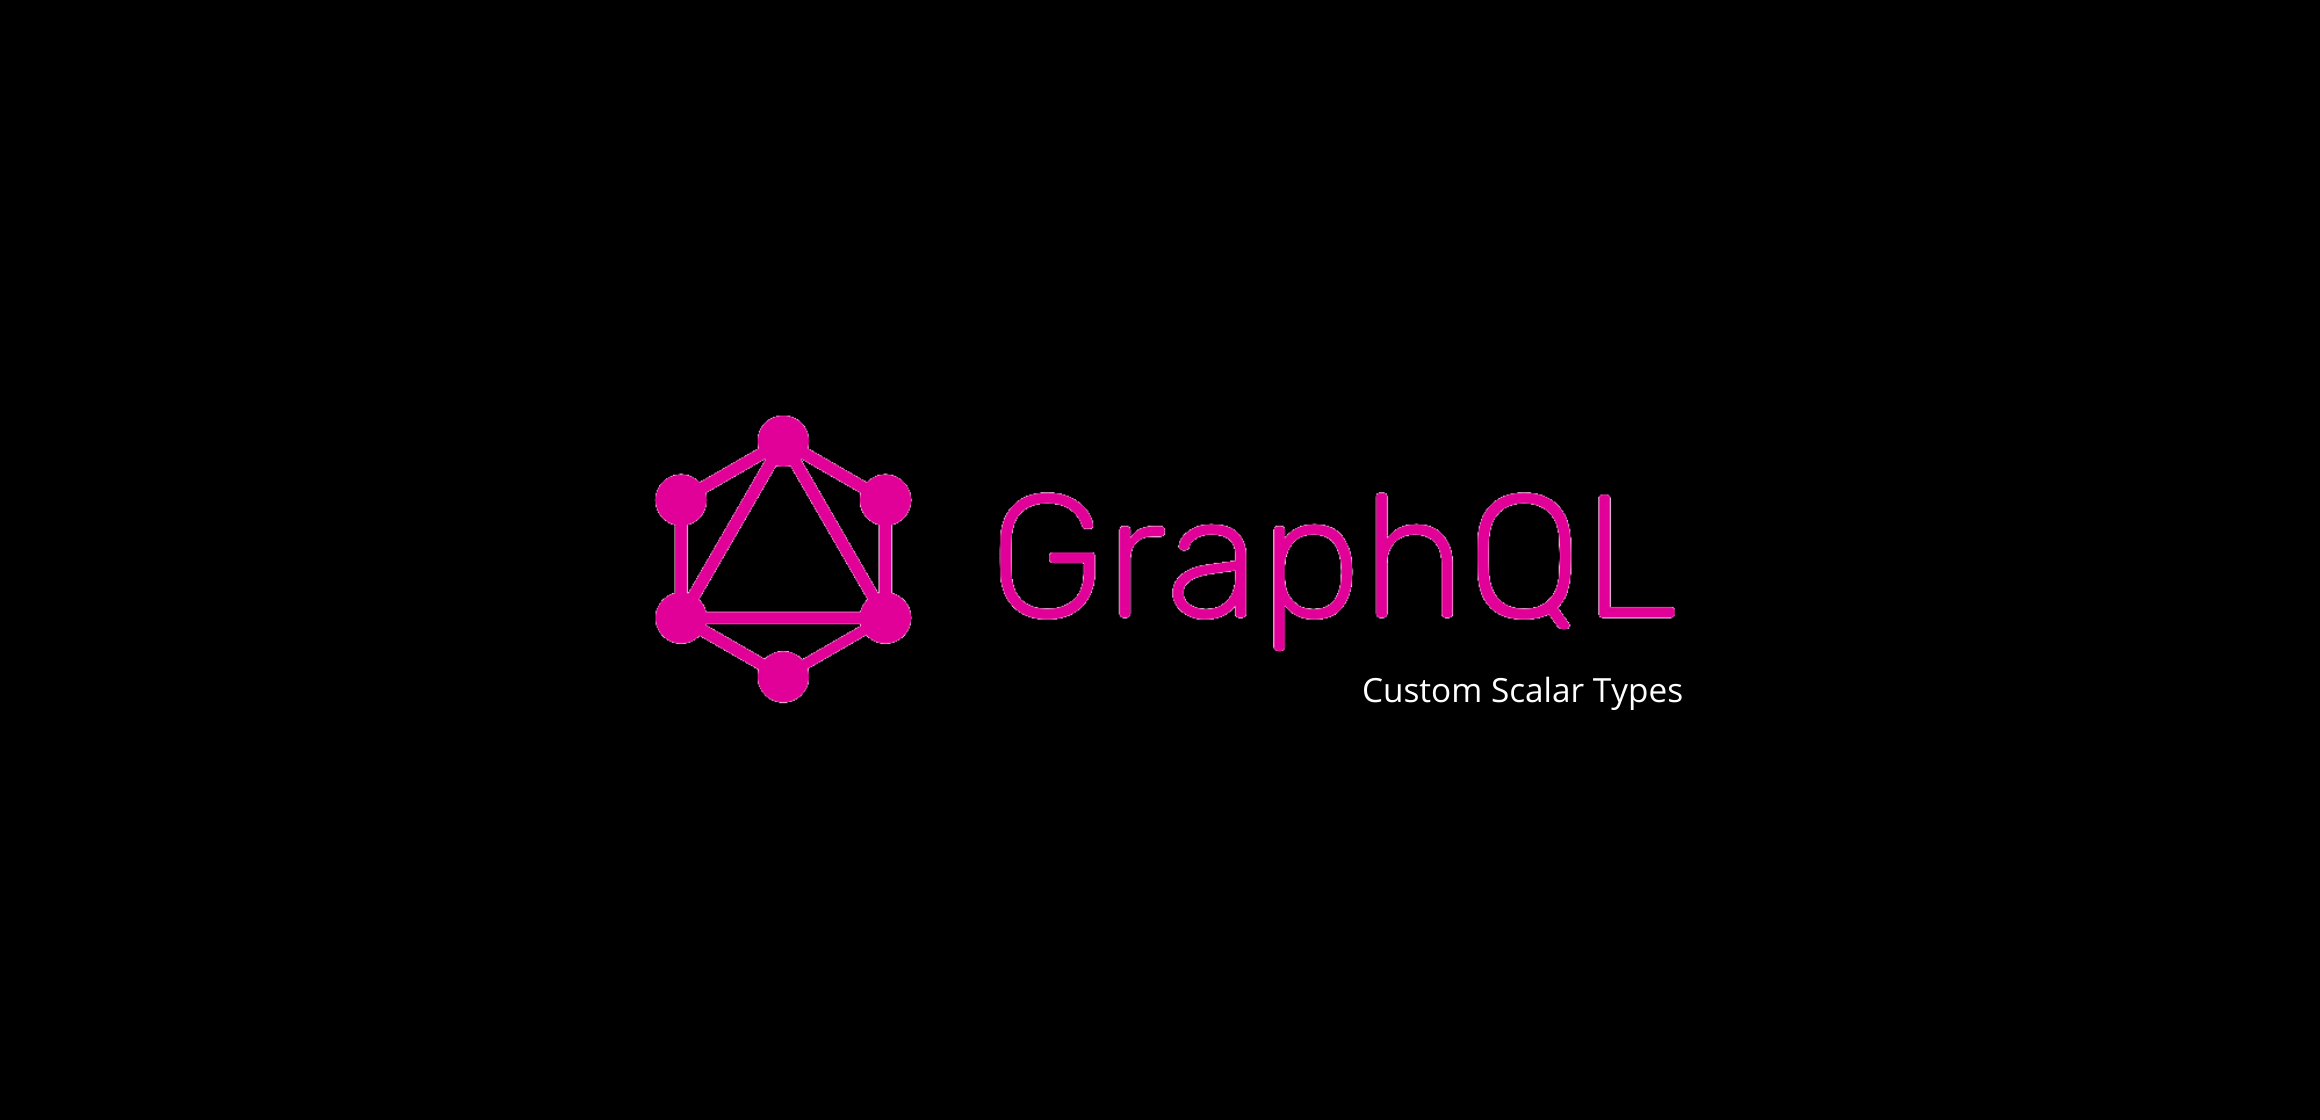 GraphQL custom scalar types